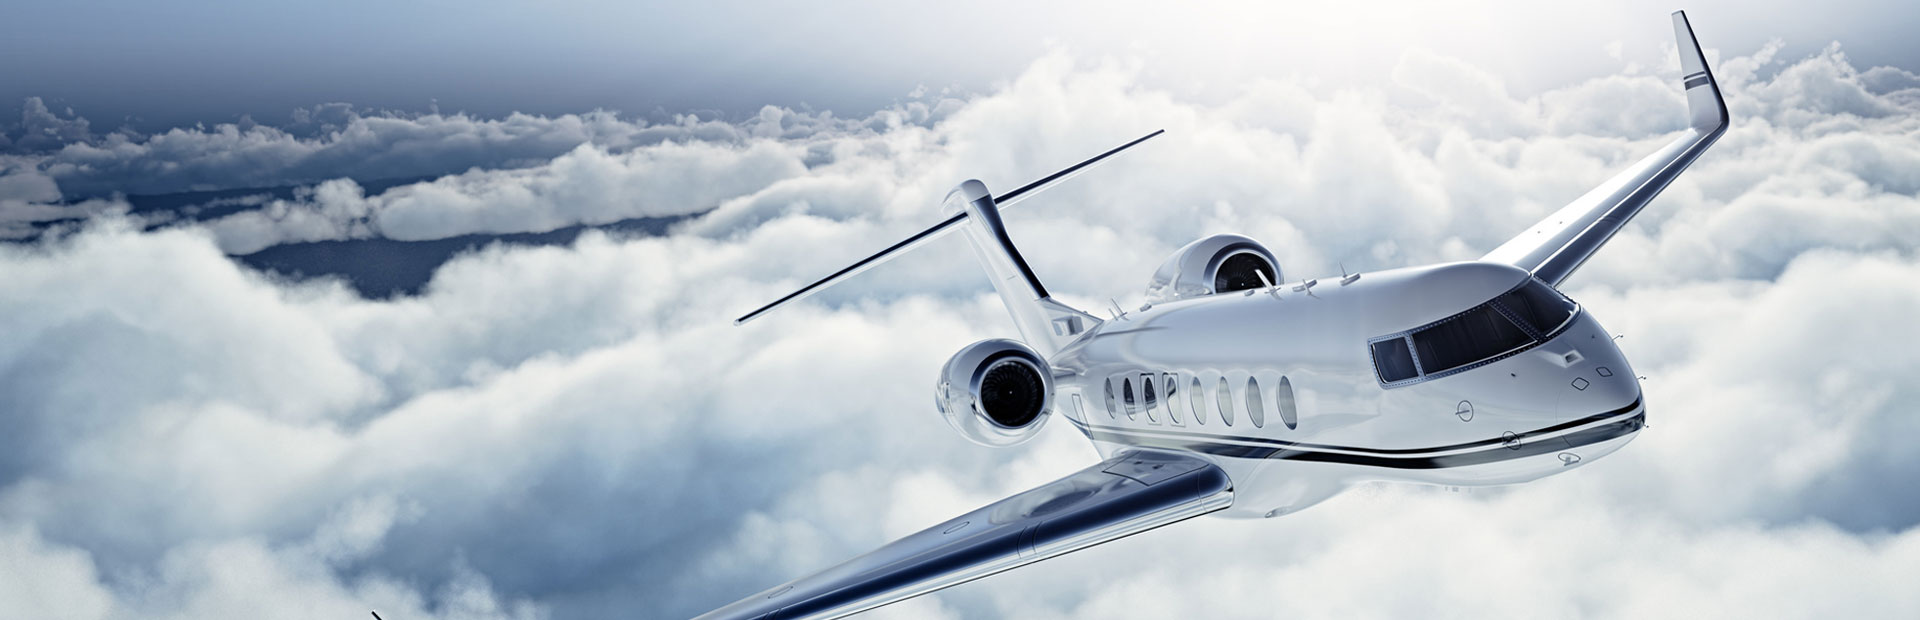 Southwest Business Aviation Consulting, LLC